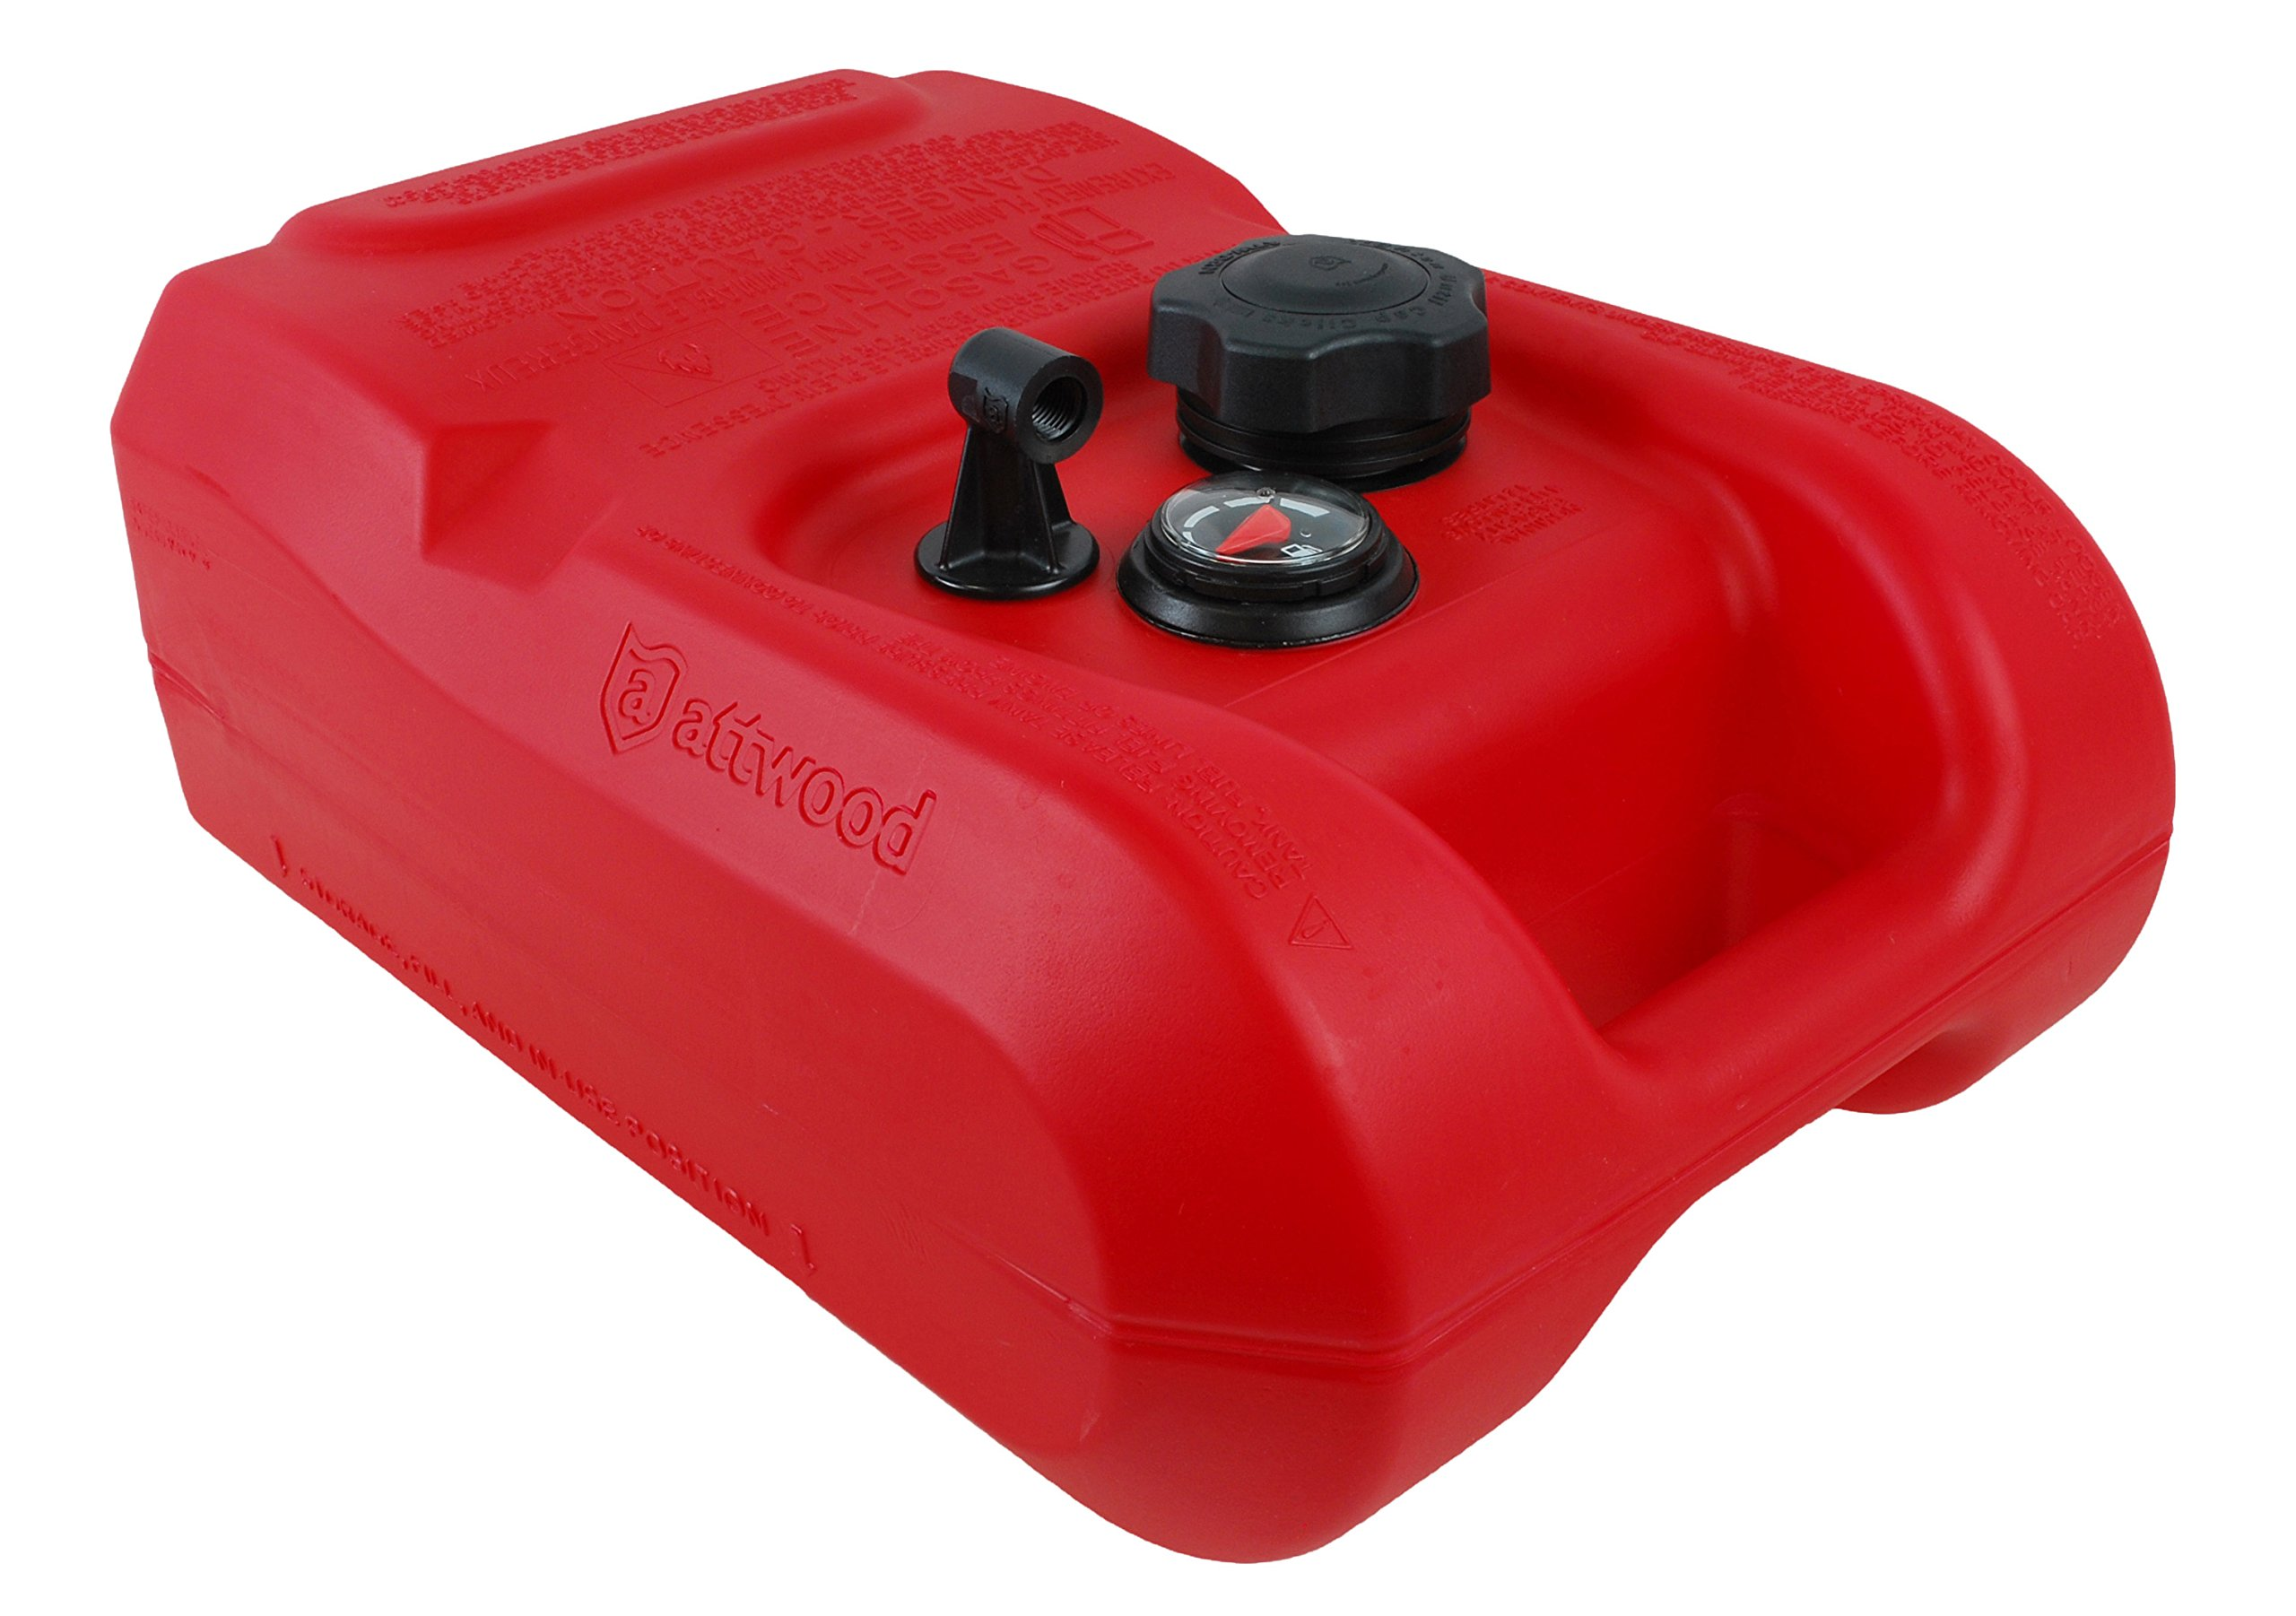 attwood 8803LPG2 Epa Certified 3 gallon Portable Fuel Tank with Gauge